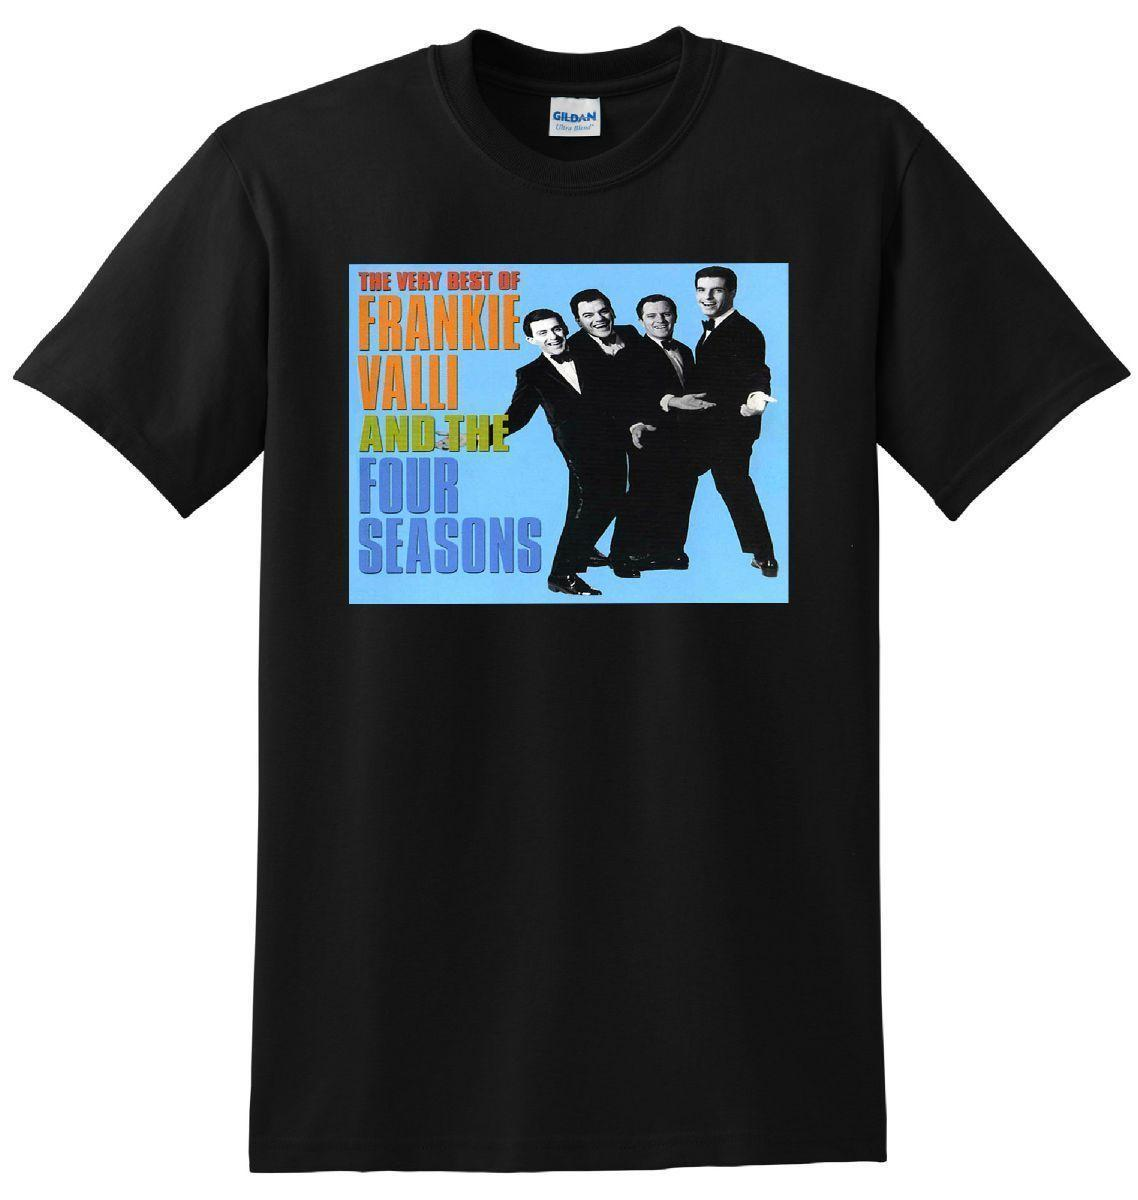 FRANKI VALLI AND THE FOUR SEASONS T SHIRT vinyl cd cover SMALL MEDIUM LARGE XL